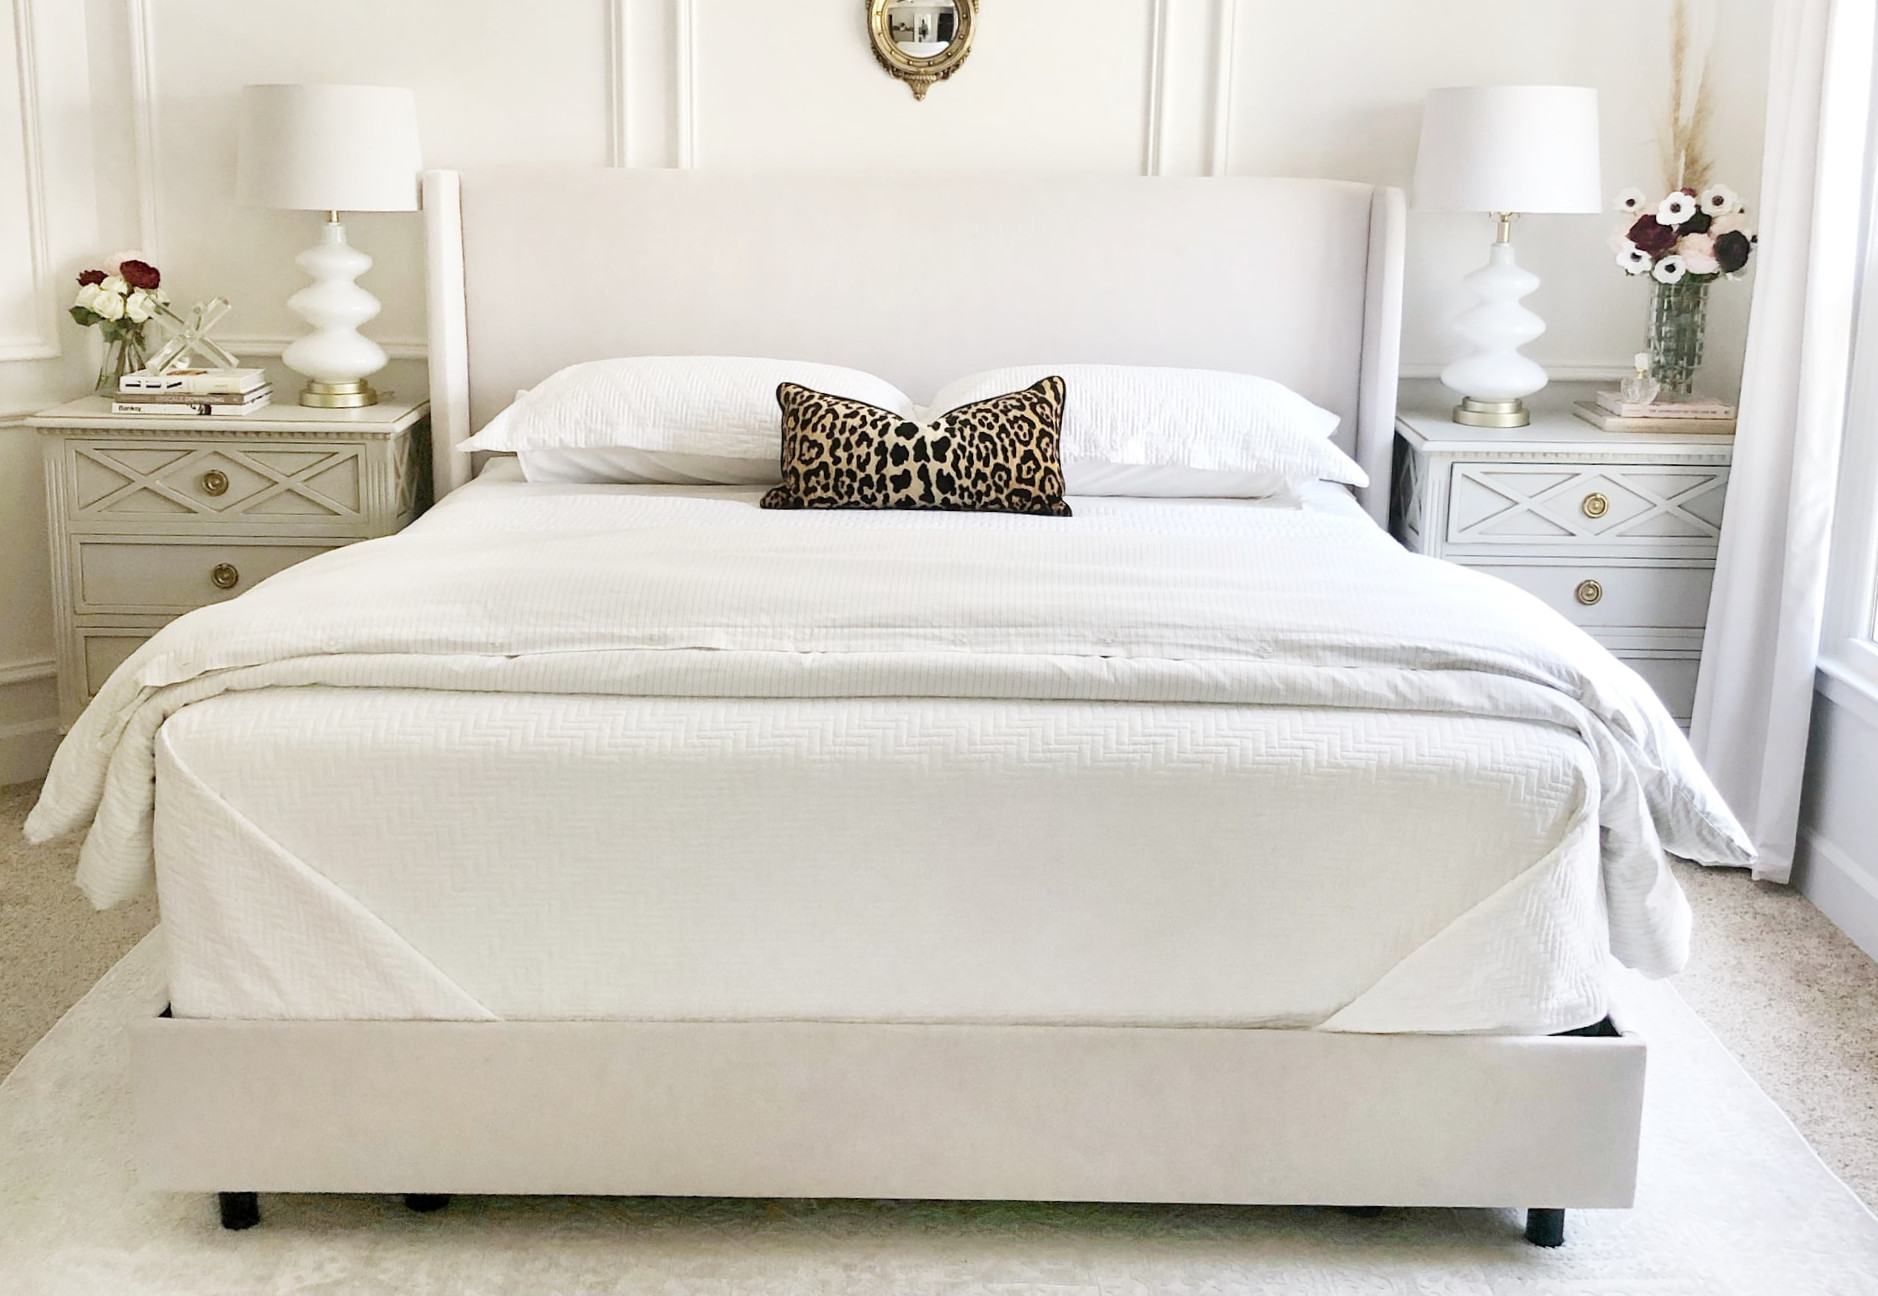 expensive feeling bedroom on a budget